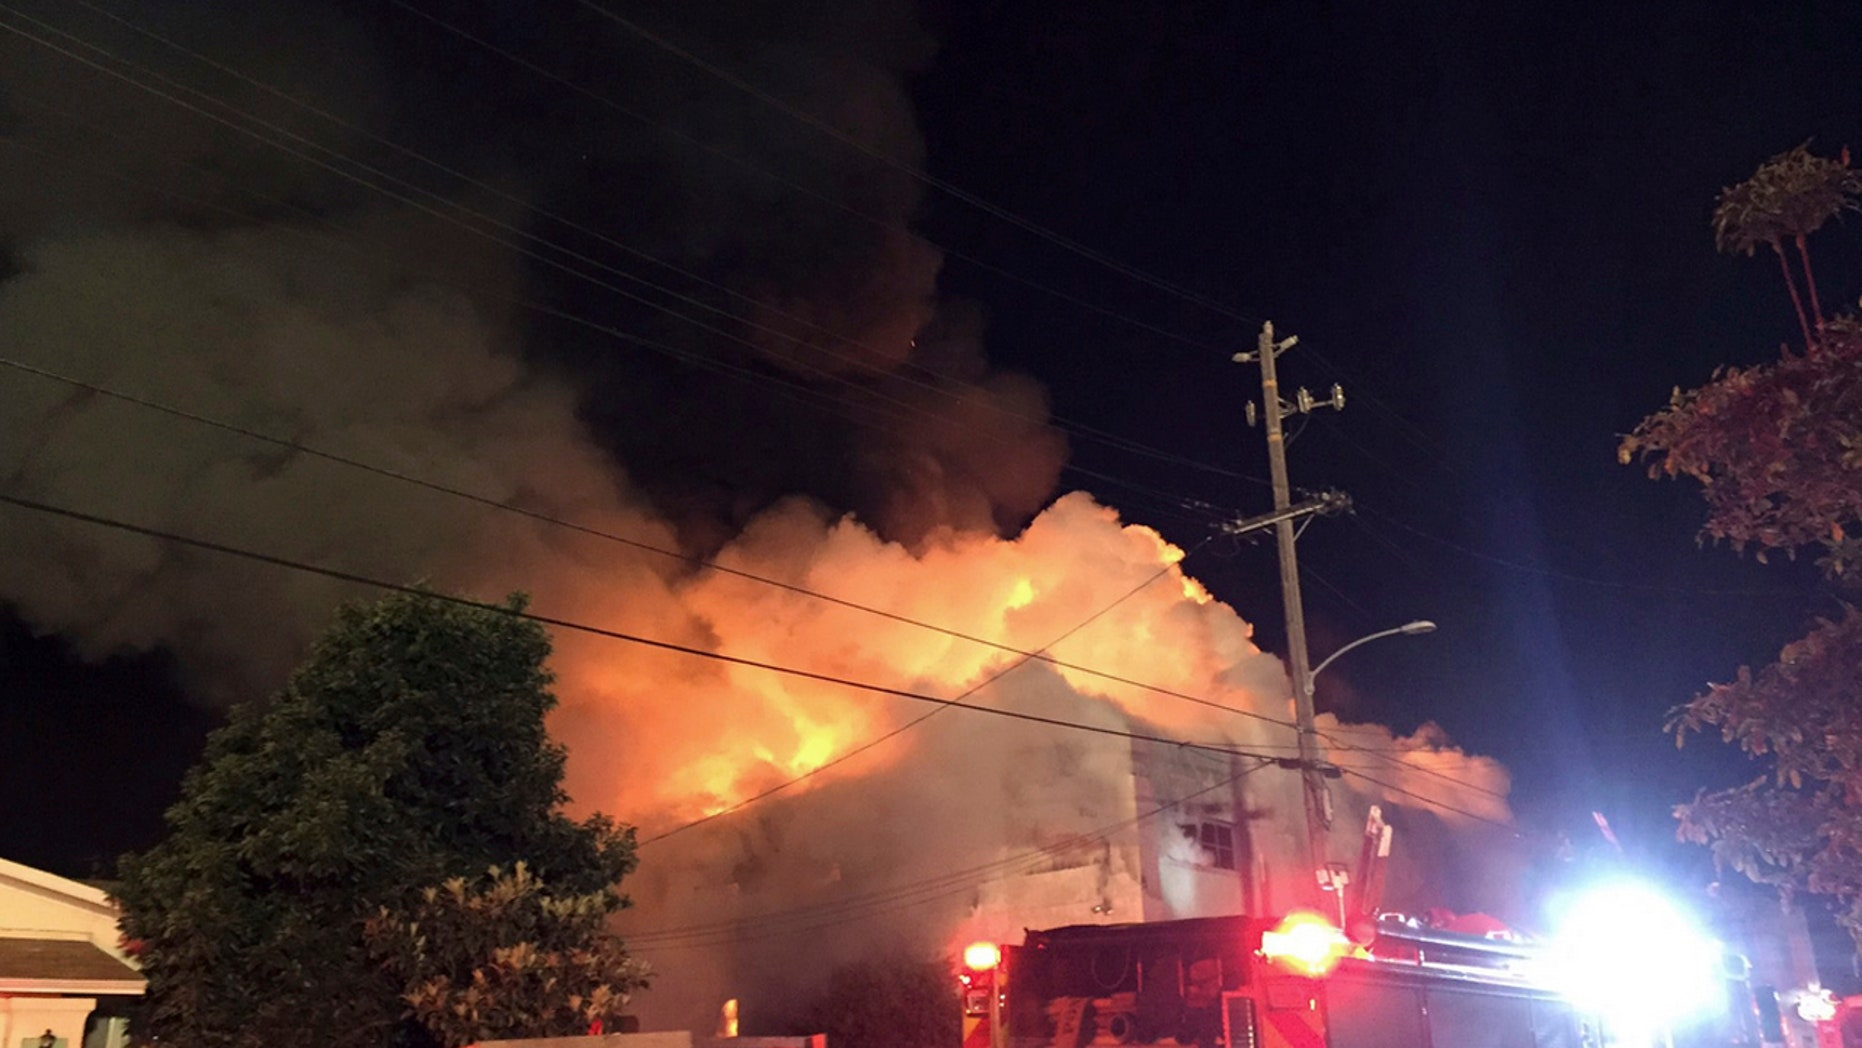 This photo provided by @seungylee14 shows the scene of a fire in Oakland, early Saturday, Dec. 3, 2016.